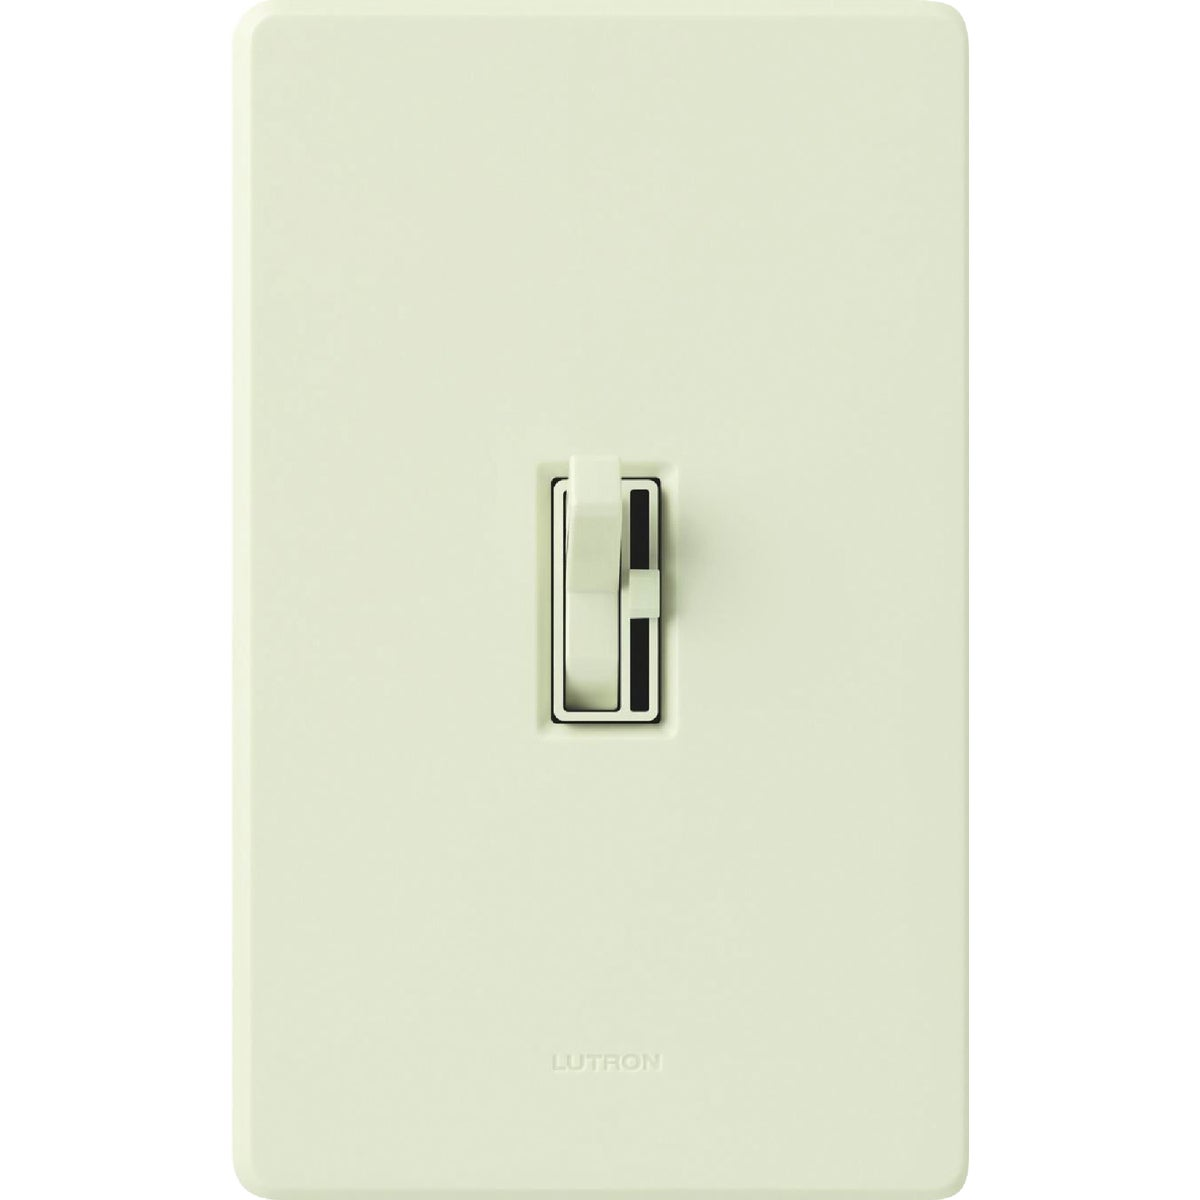 LT ALM SP SLIDE DIMMER - TG-600PH-LA by Lutron Elect Co Inc